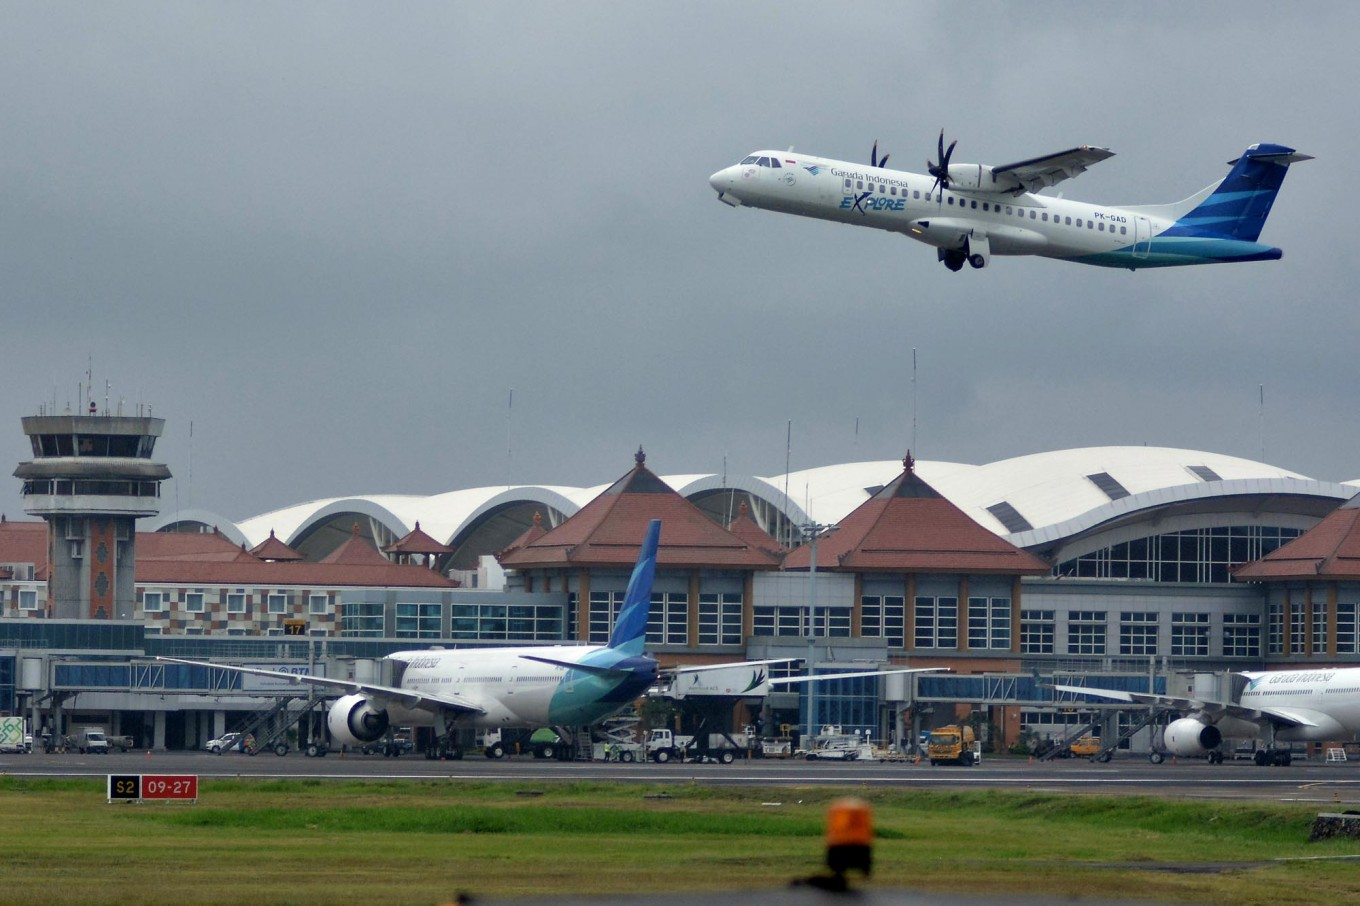 Garuda Indonesia pilot grounded over comment on Surabaya bombings